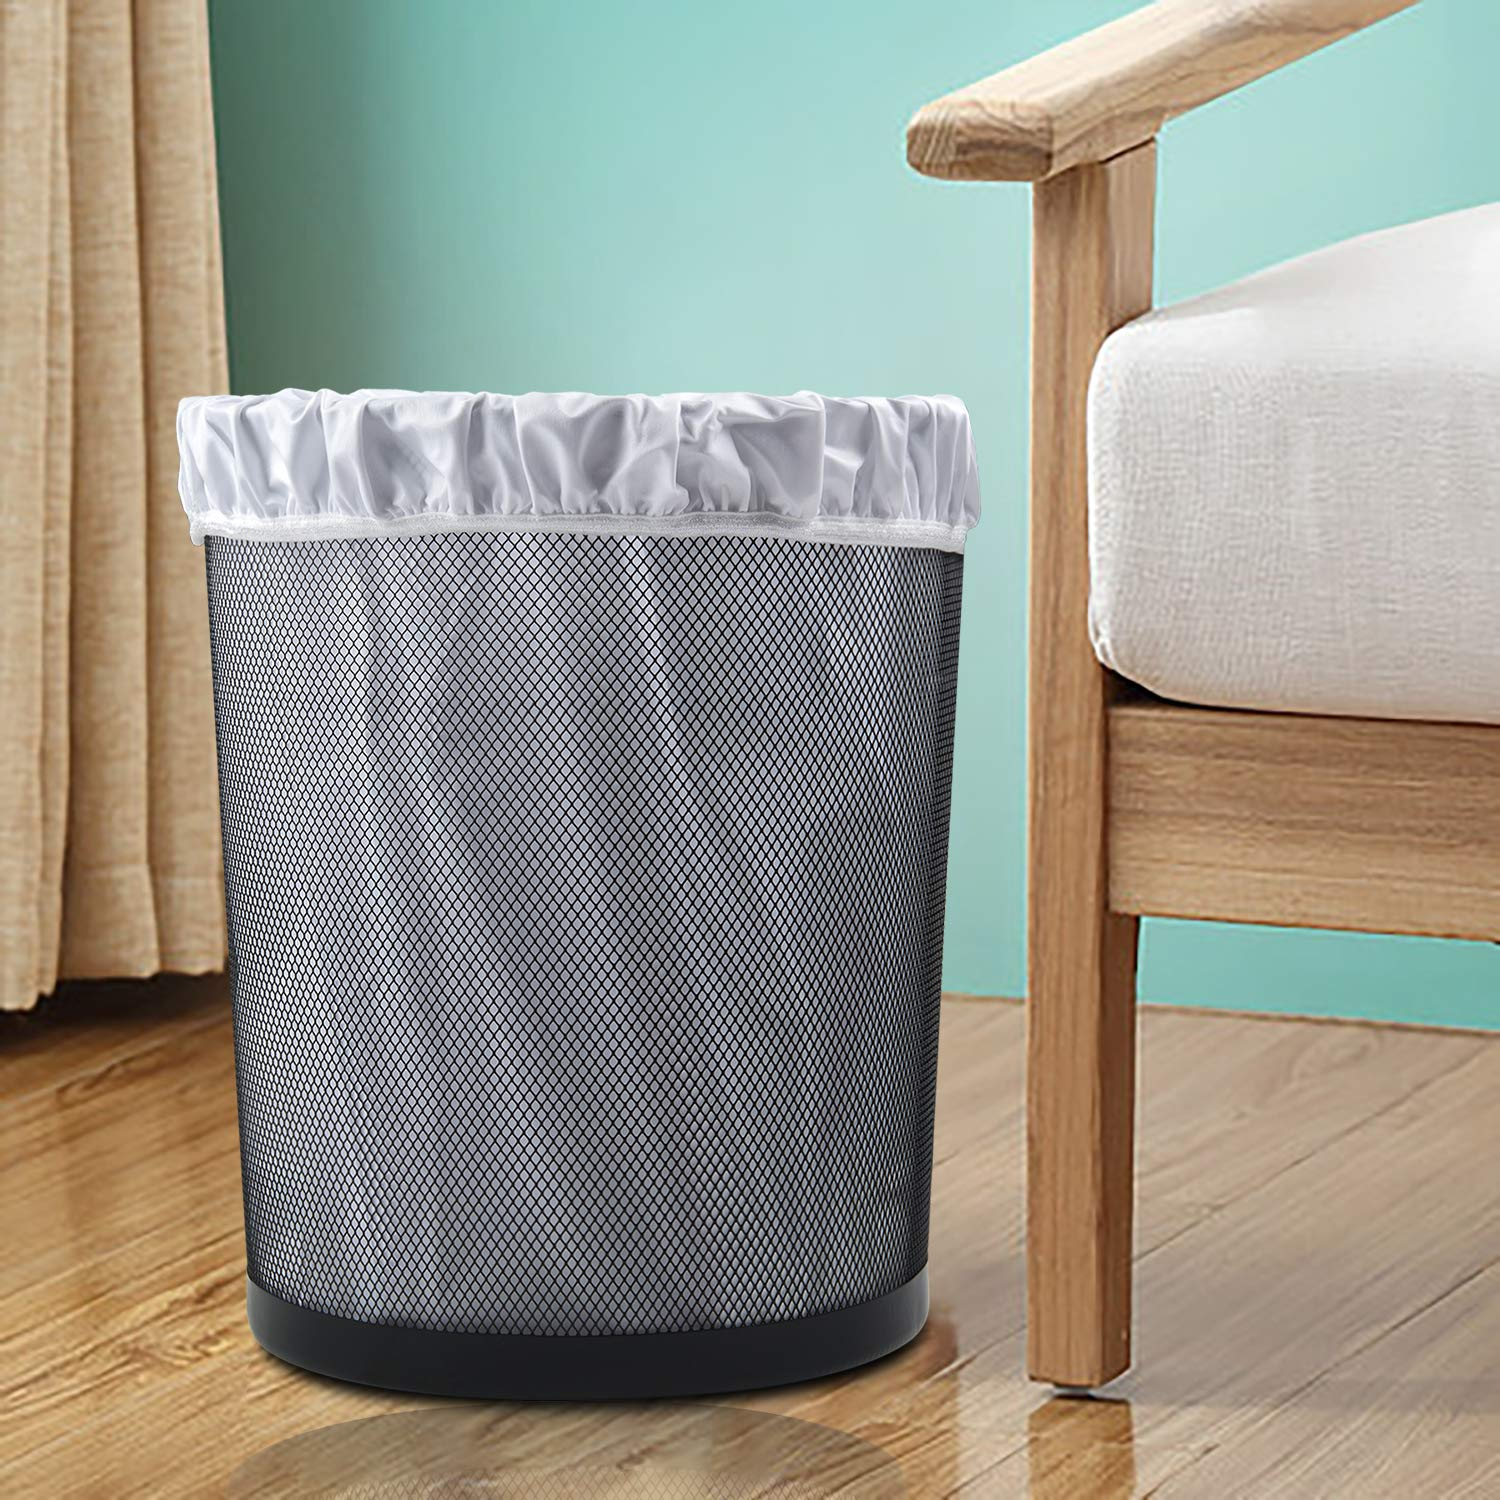 LLS-B2629-US ALVABABY Reusable Diaper Pail Liner for Cloth Diaper,Laundry,Kitchen Garbage Cans Black Grey, Small Size:5 Gallon